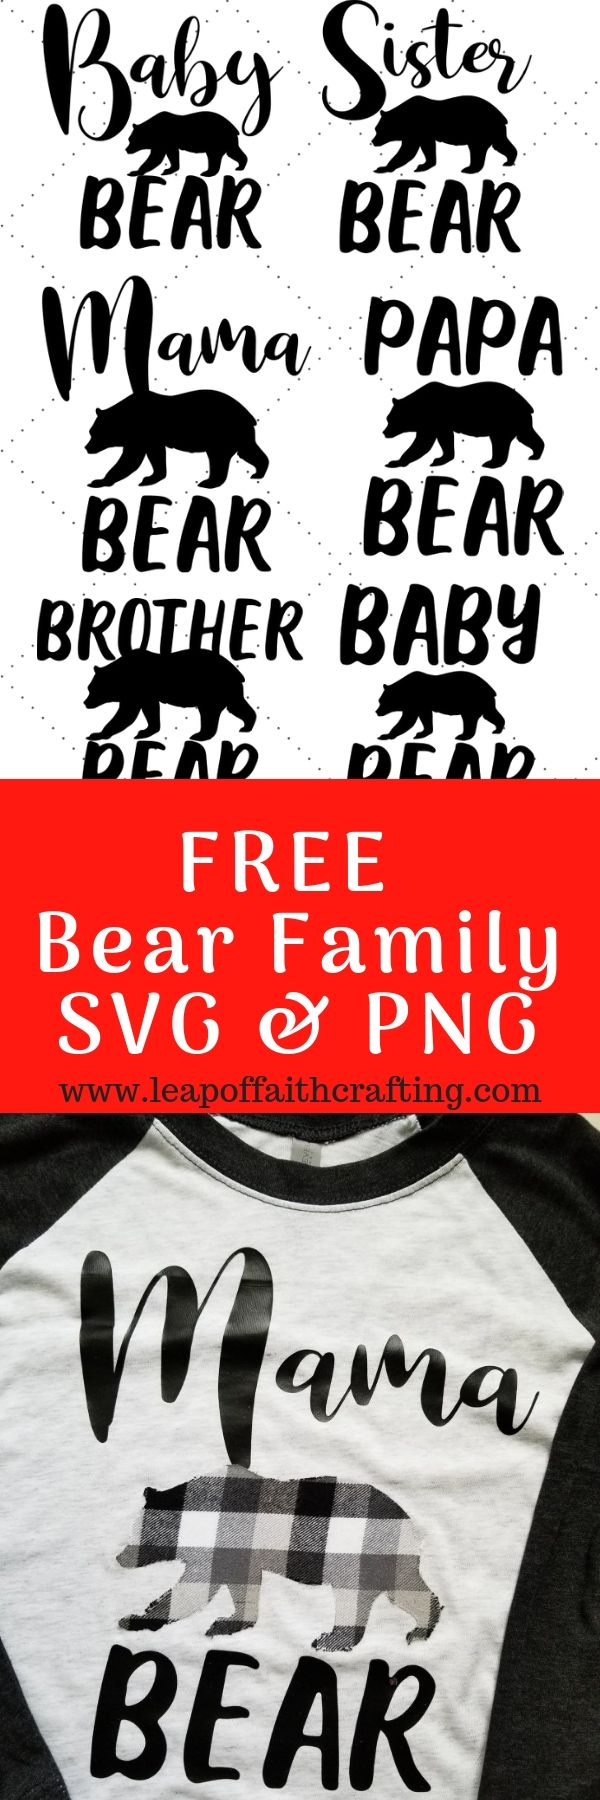 How to Make Adorable Family Pajamas for Cheap Free SVG